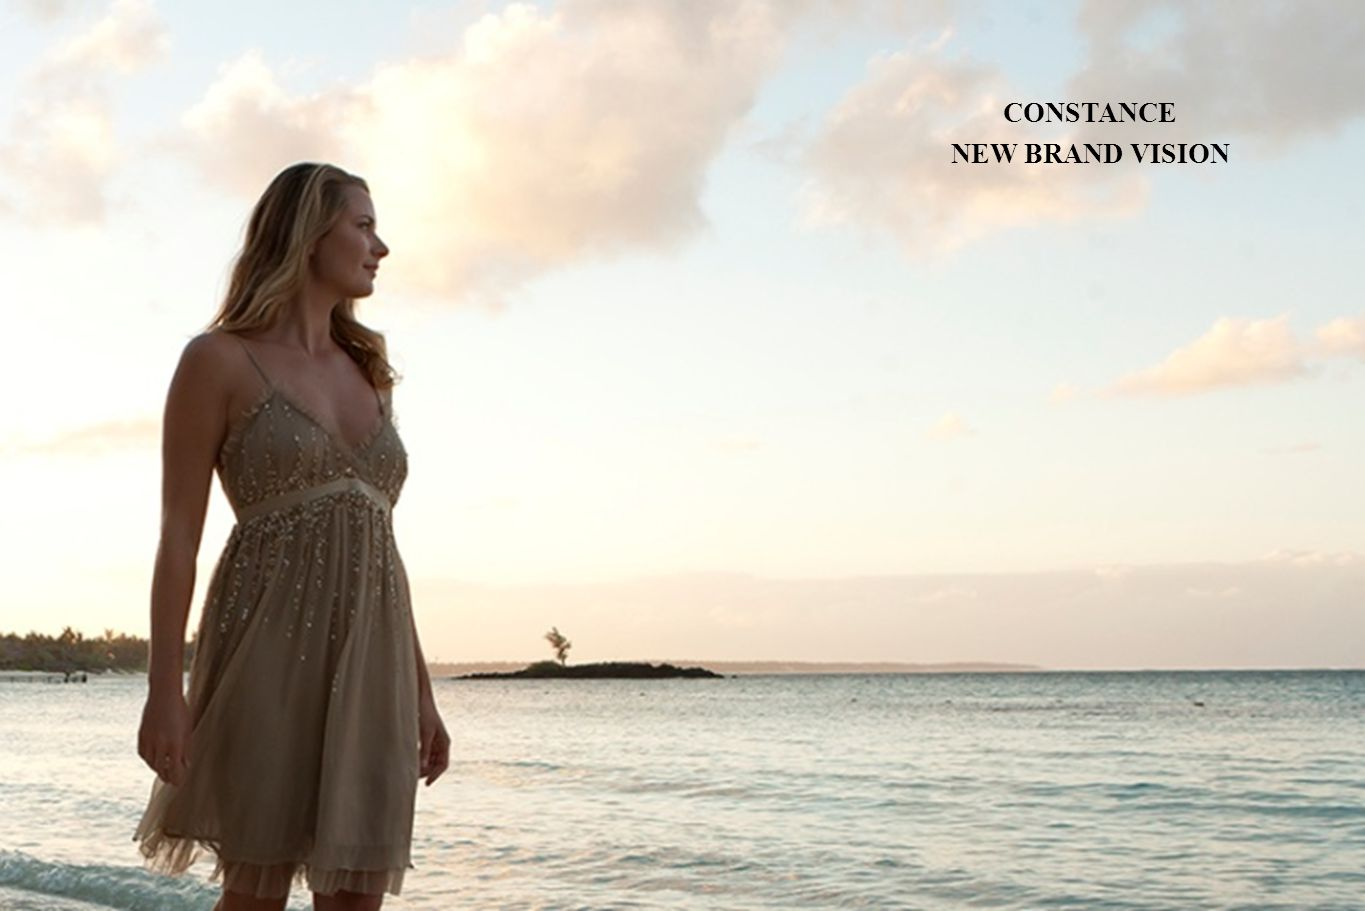 CONSTANCE NEW BRAND VISION